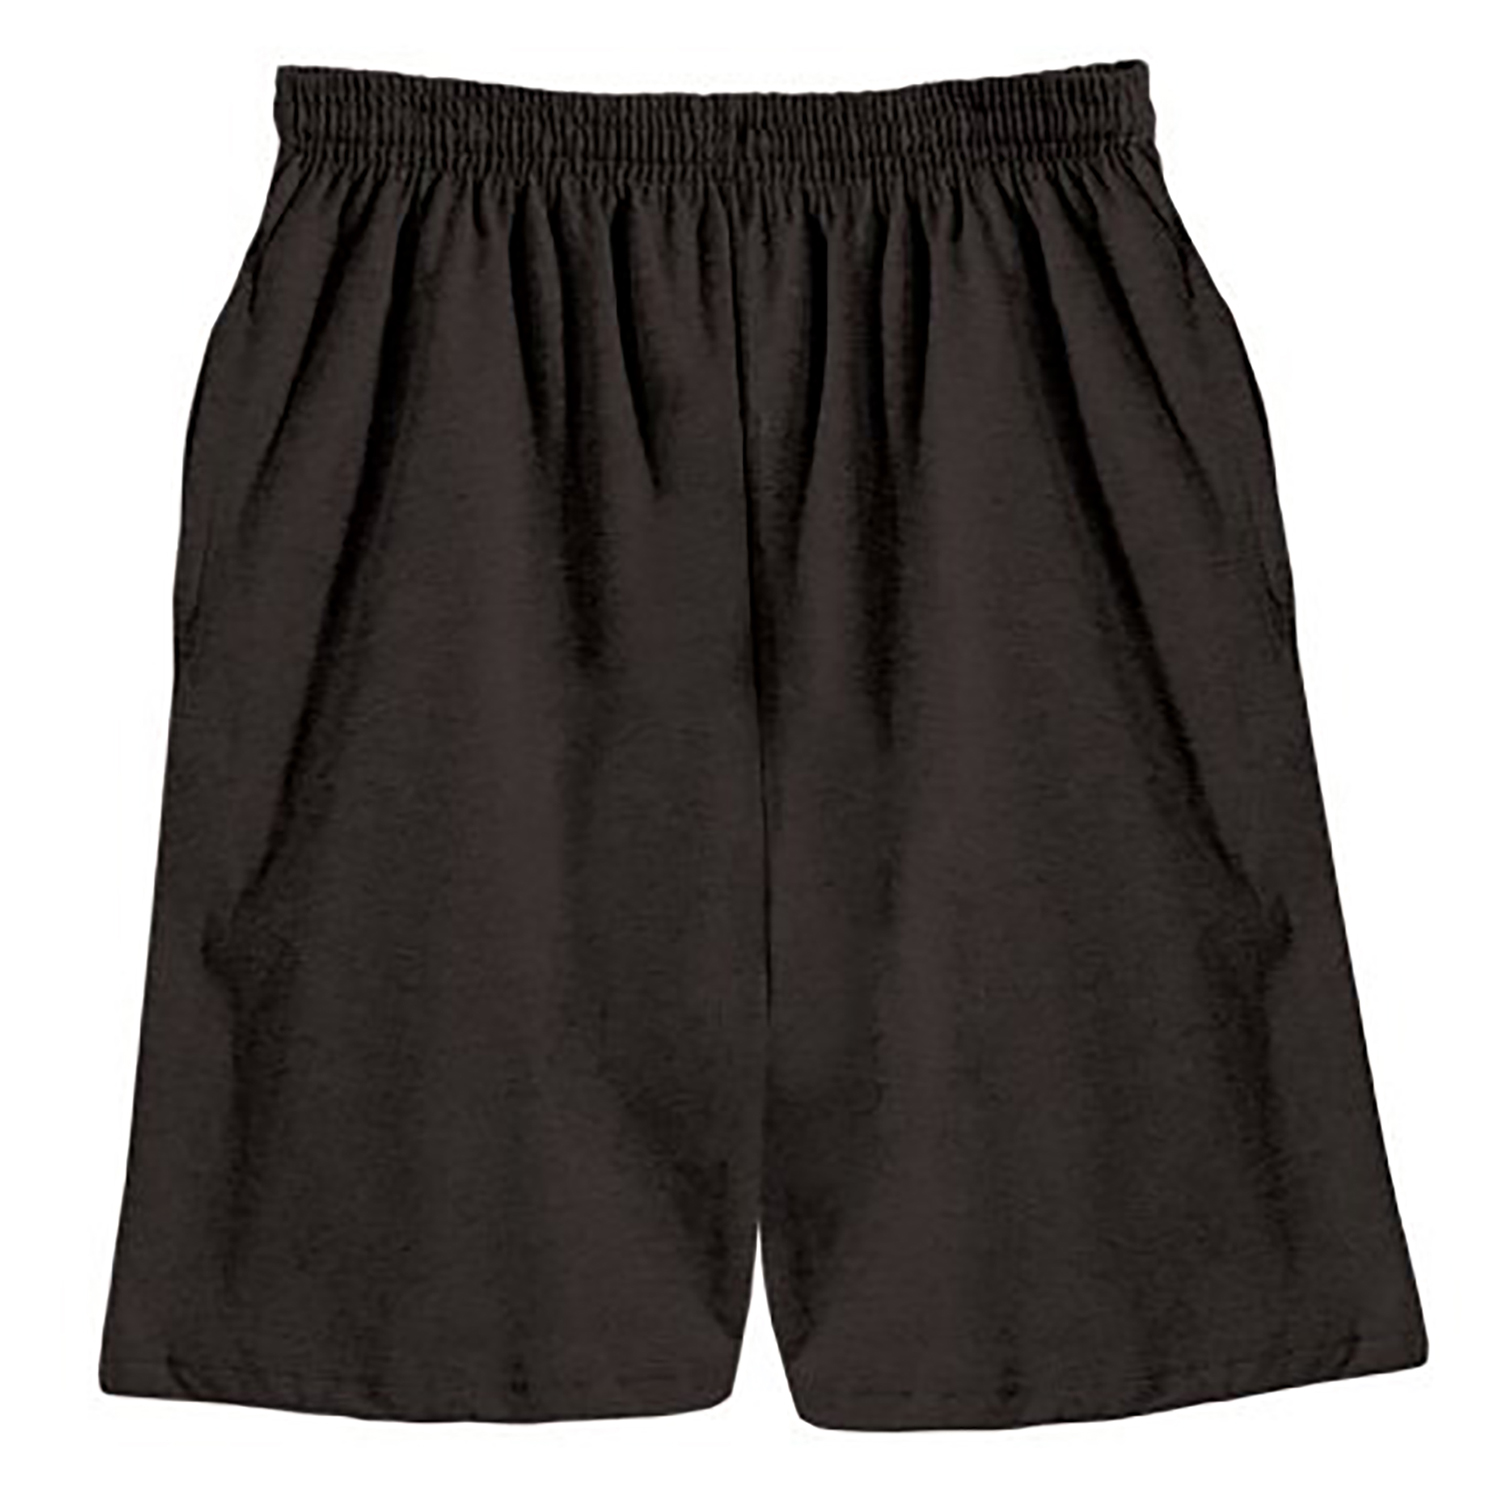 Anvil Cotton Deluxe Heavyweight Short